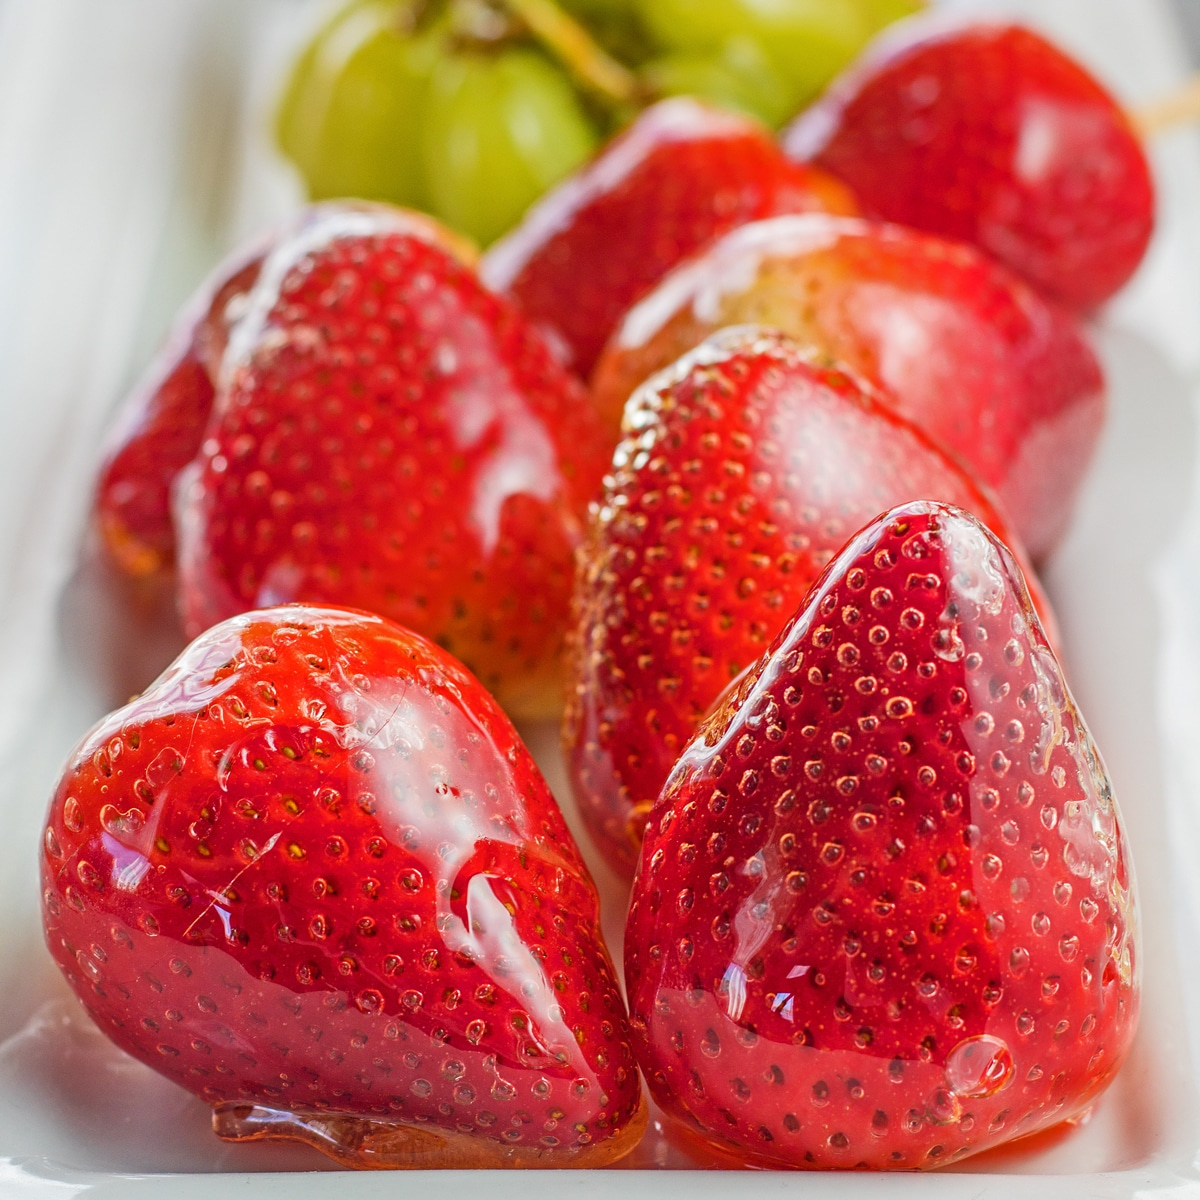 large image tanghulu strawberries and more on serving tray.